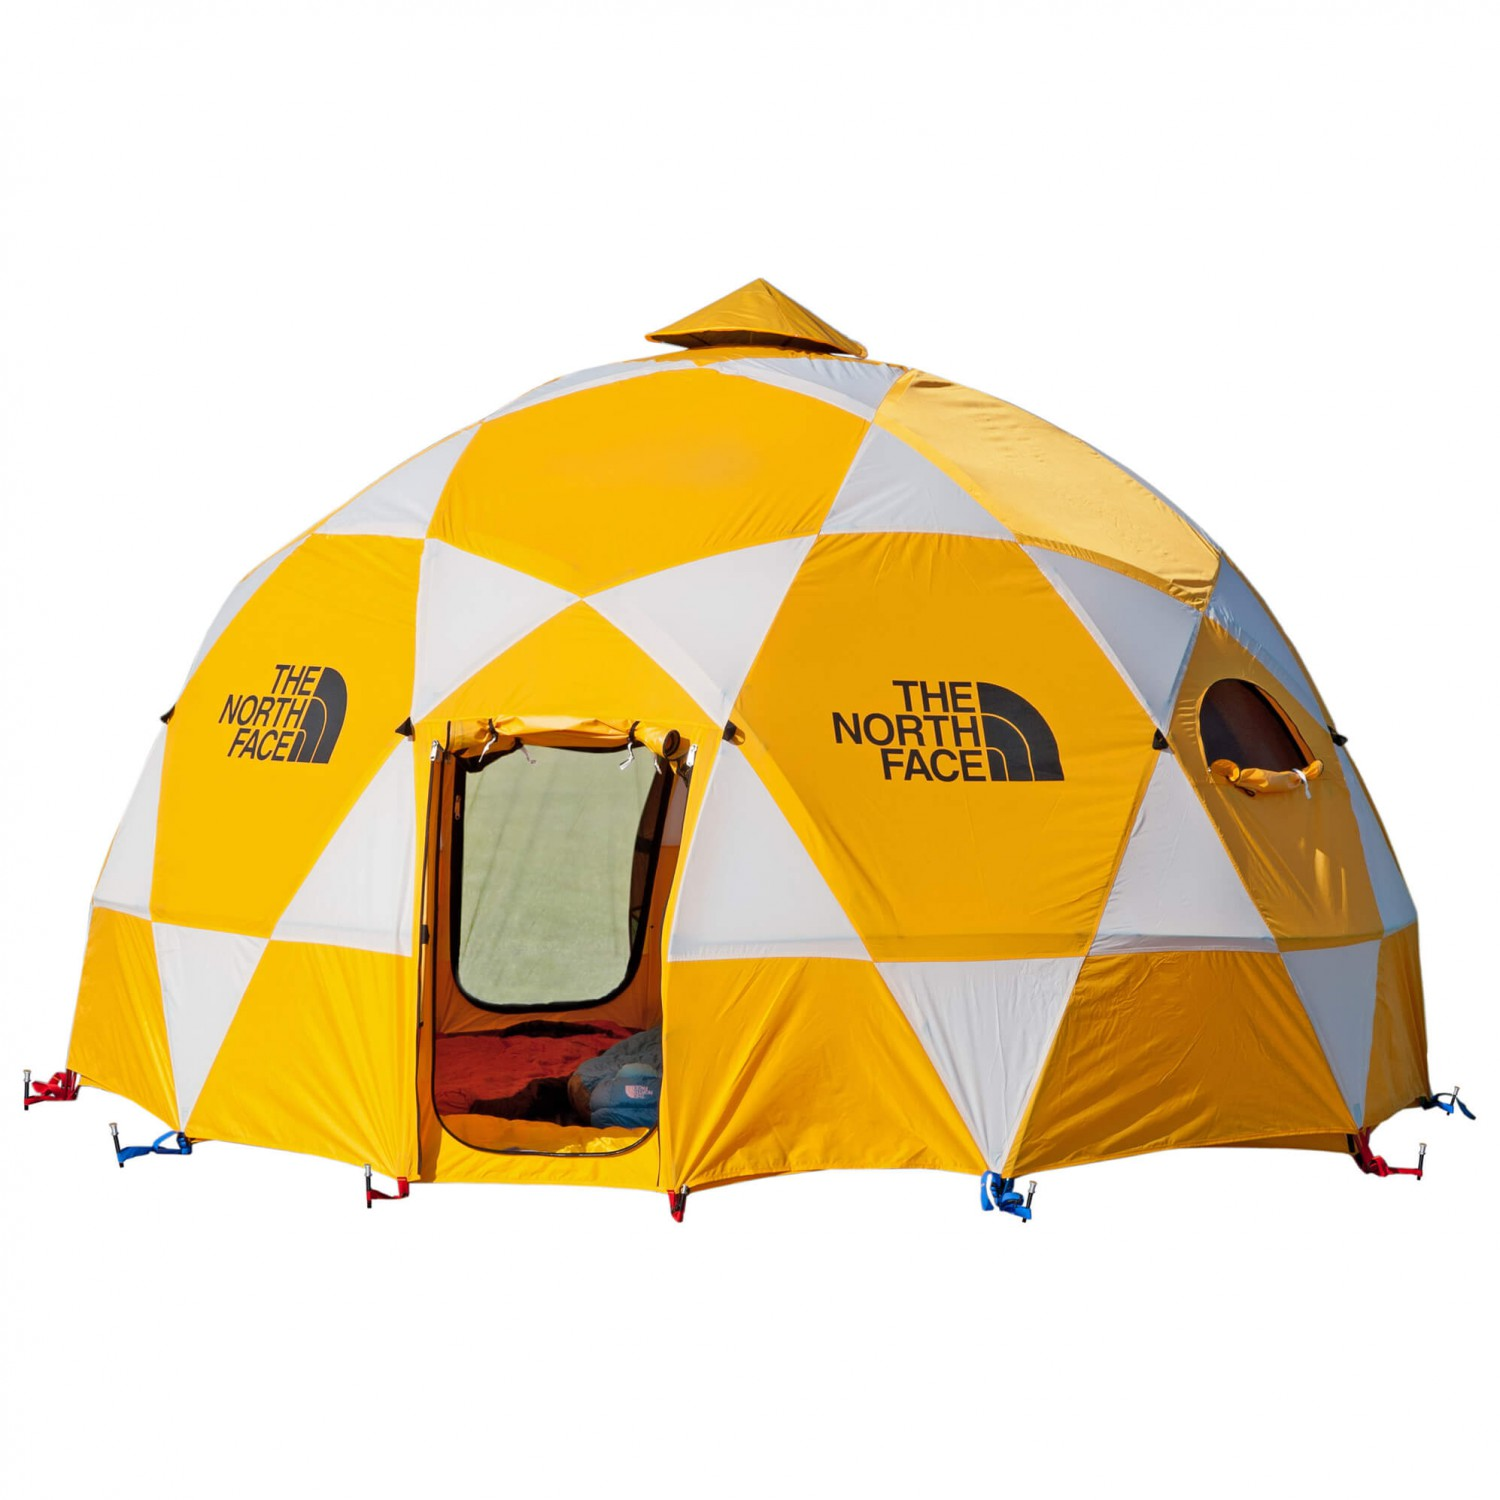 the north face 2 meter dome 8 personen expeditionszelt versandkostenfrei. Black Bedroom Furniture Sets. Home Design Ideas